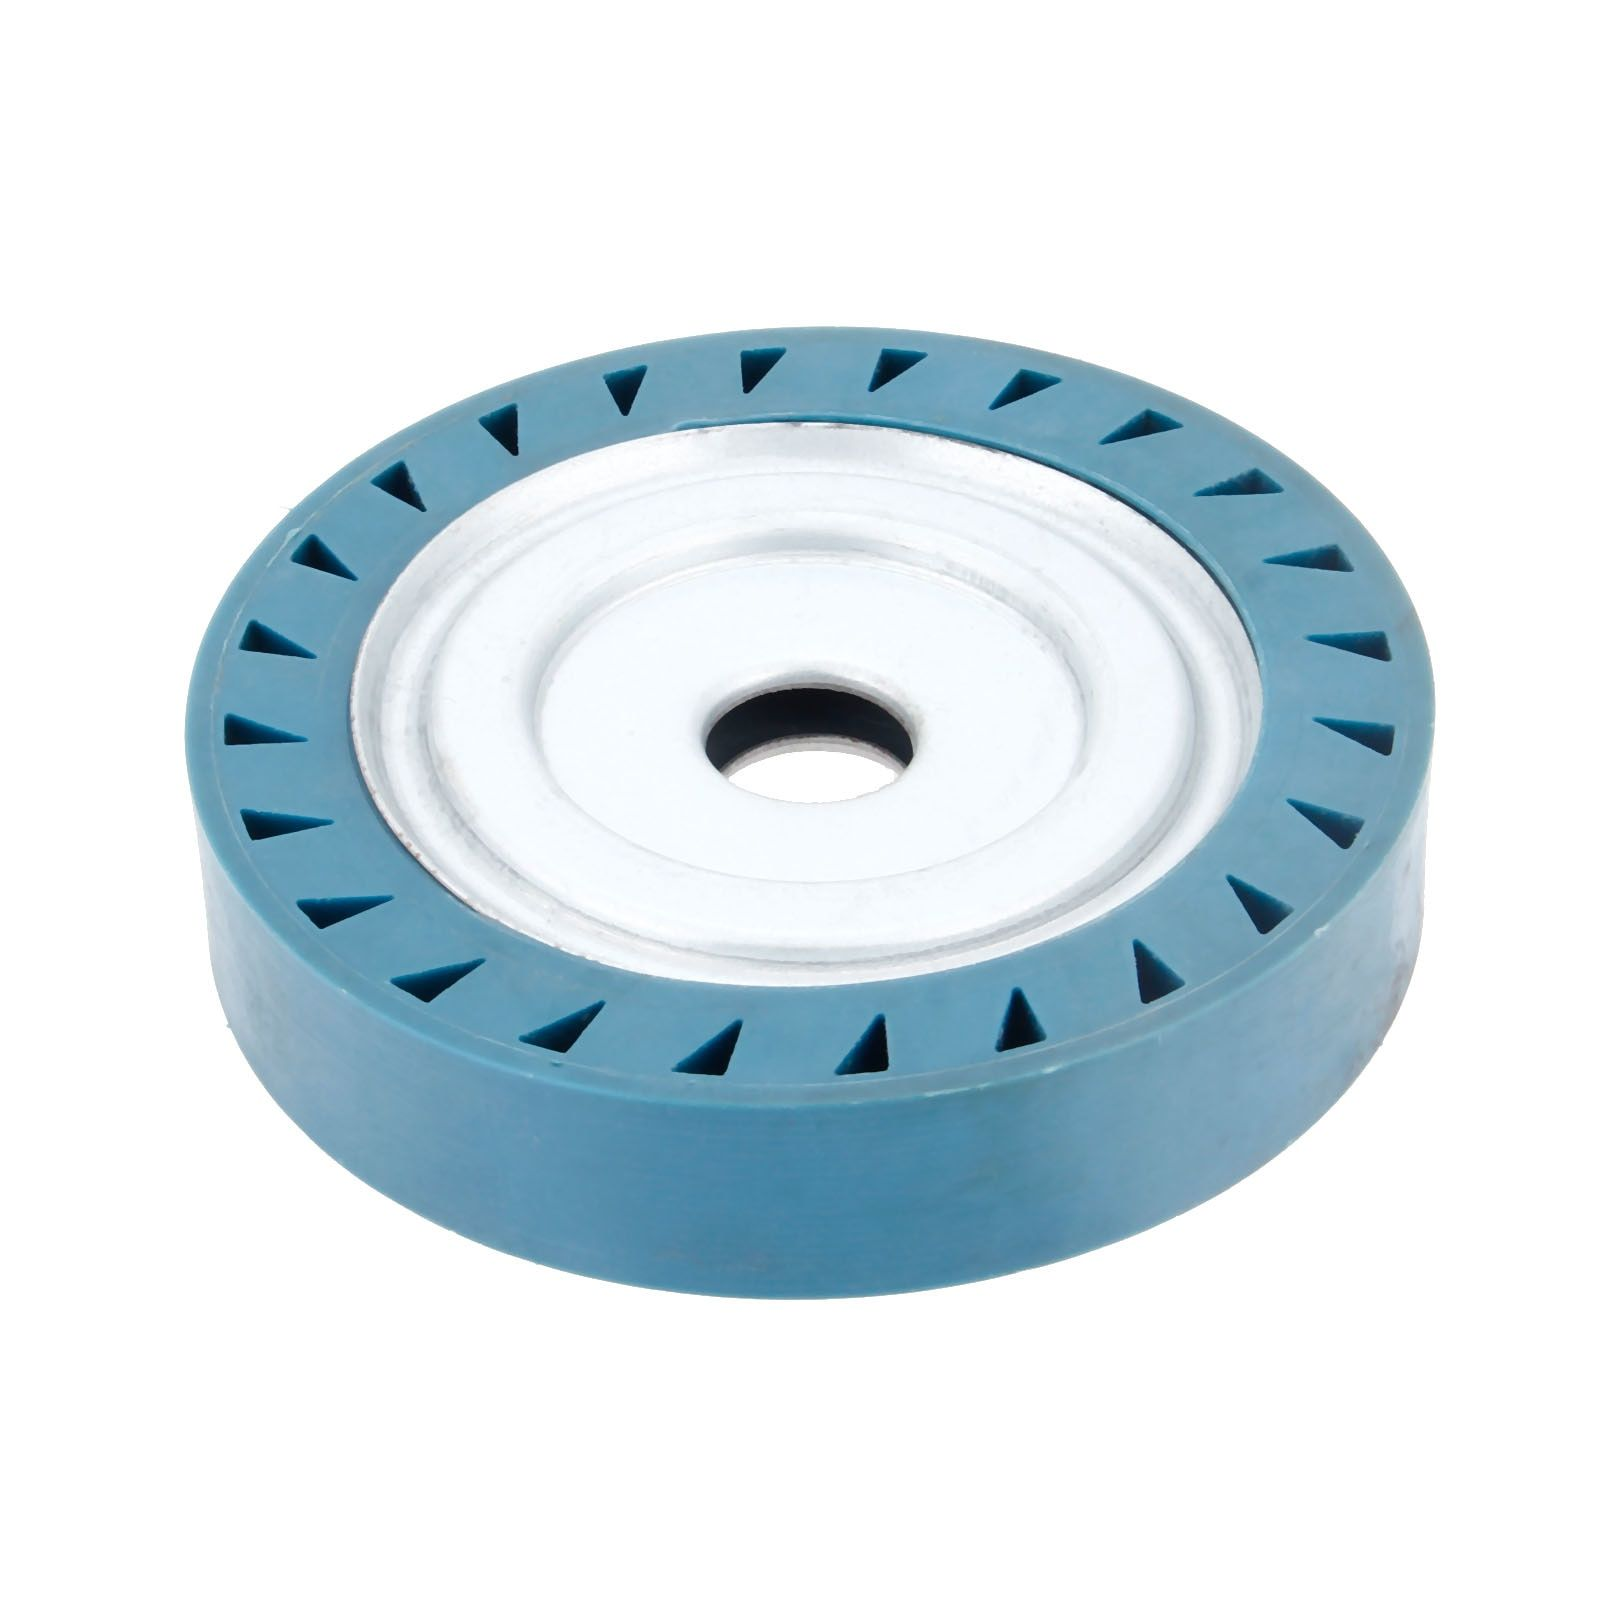 Dreld 1503025mm solid rubber contact wheel for belt